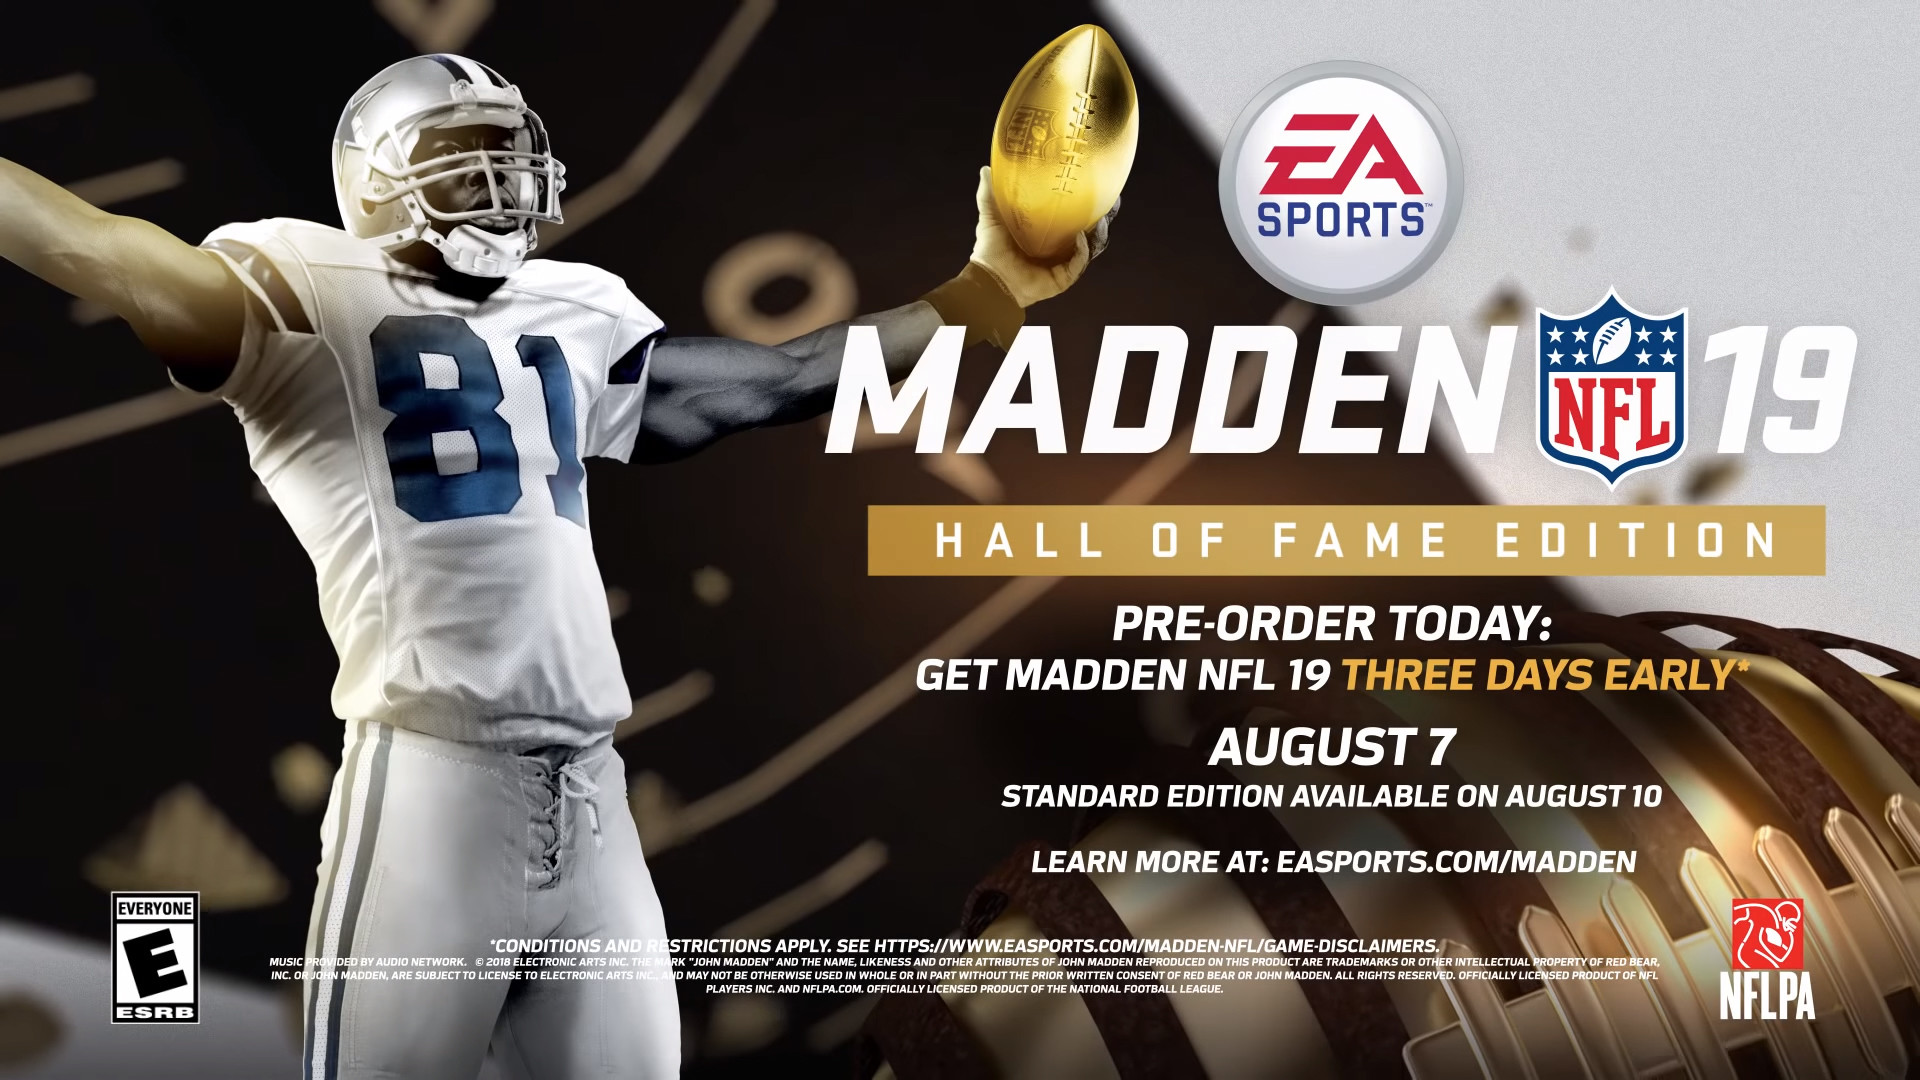 Madden 19 is coming to PC